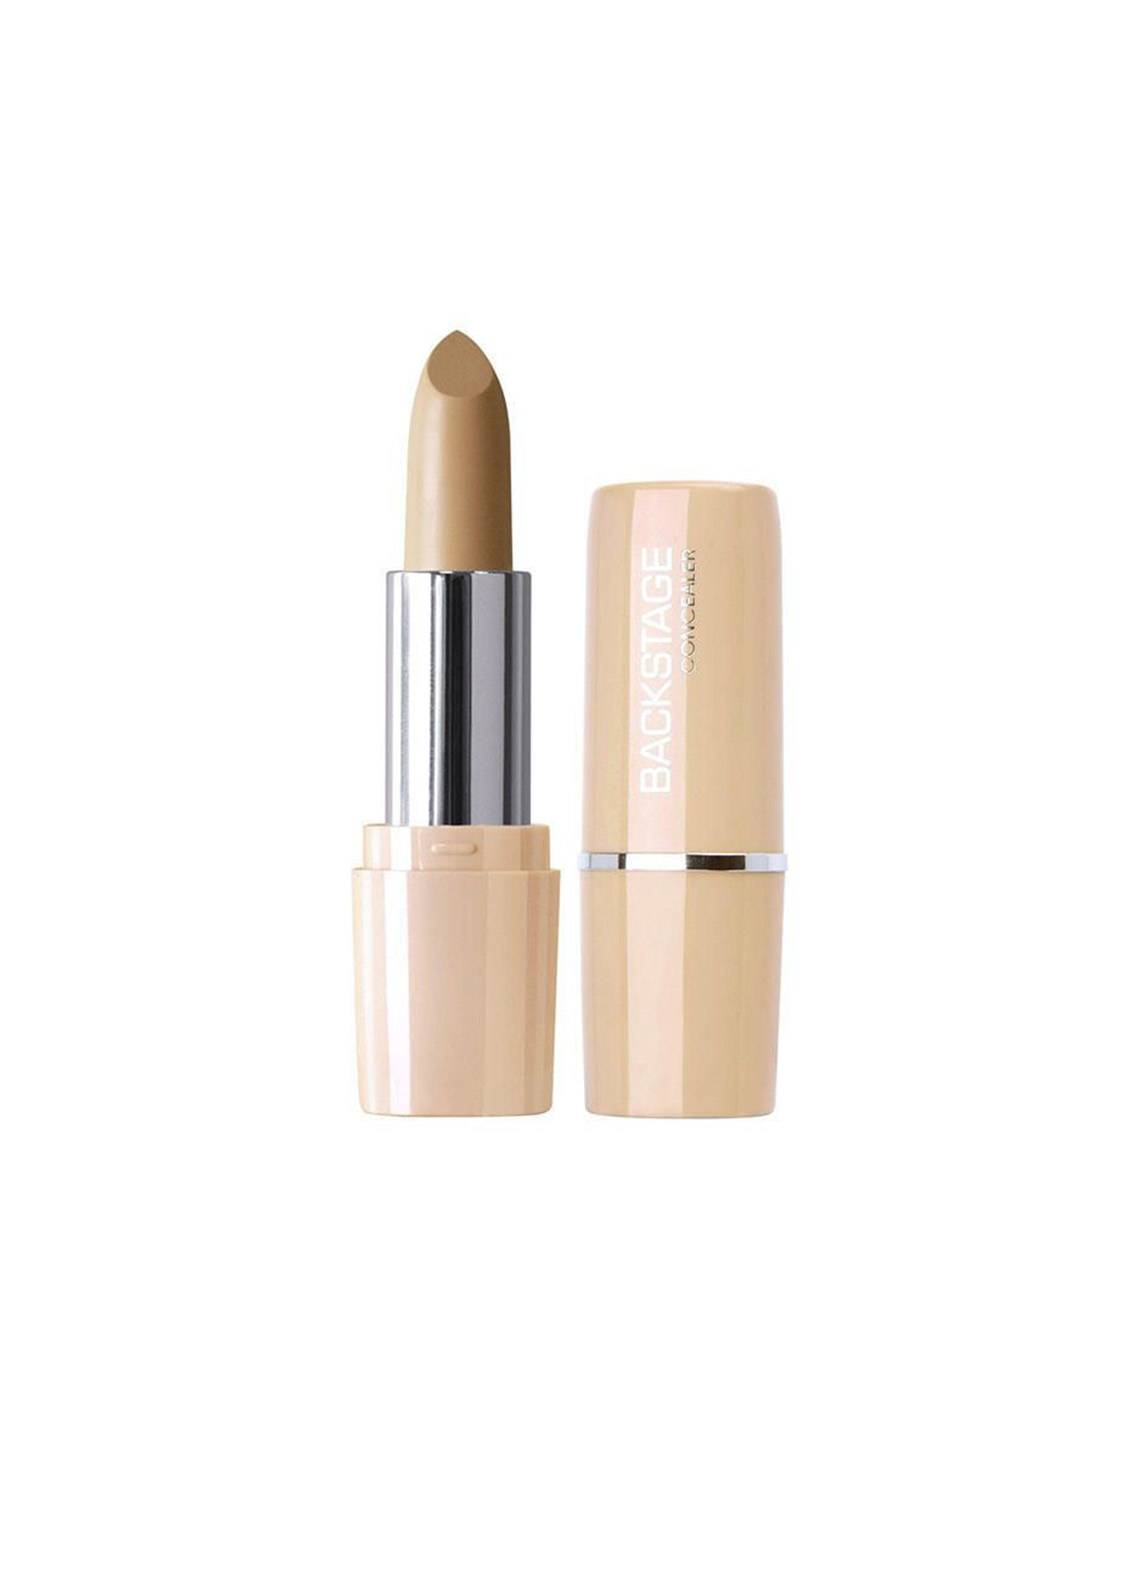 Diana Of London Backstage Concealer Nude Beige-13